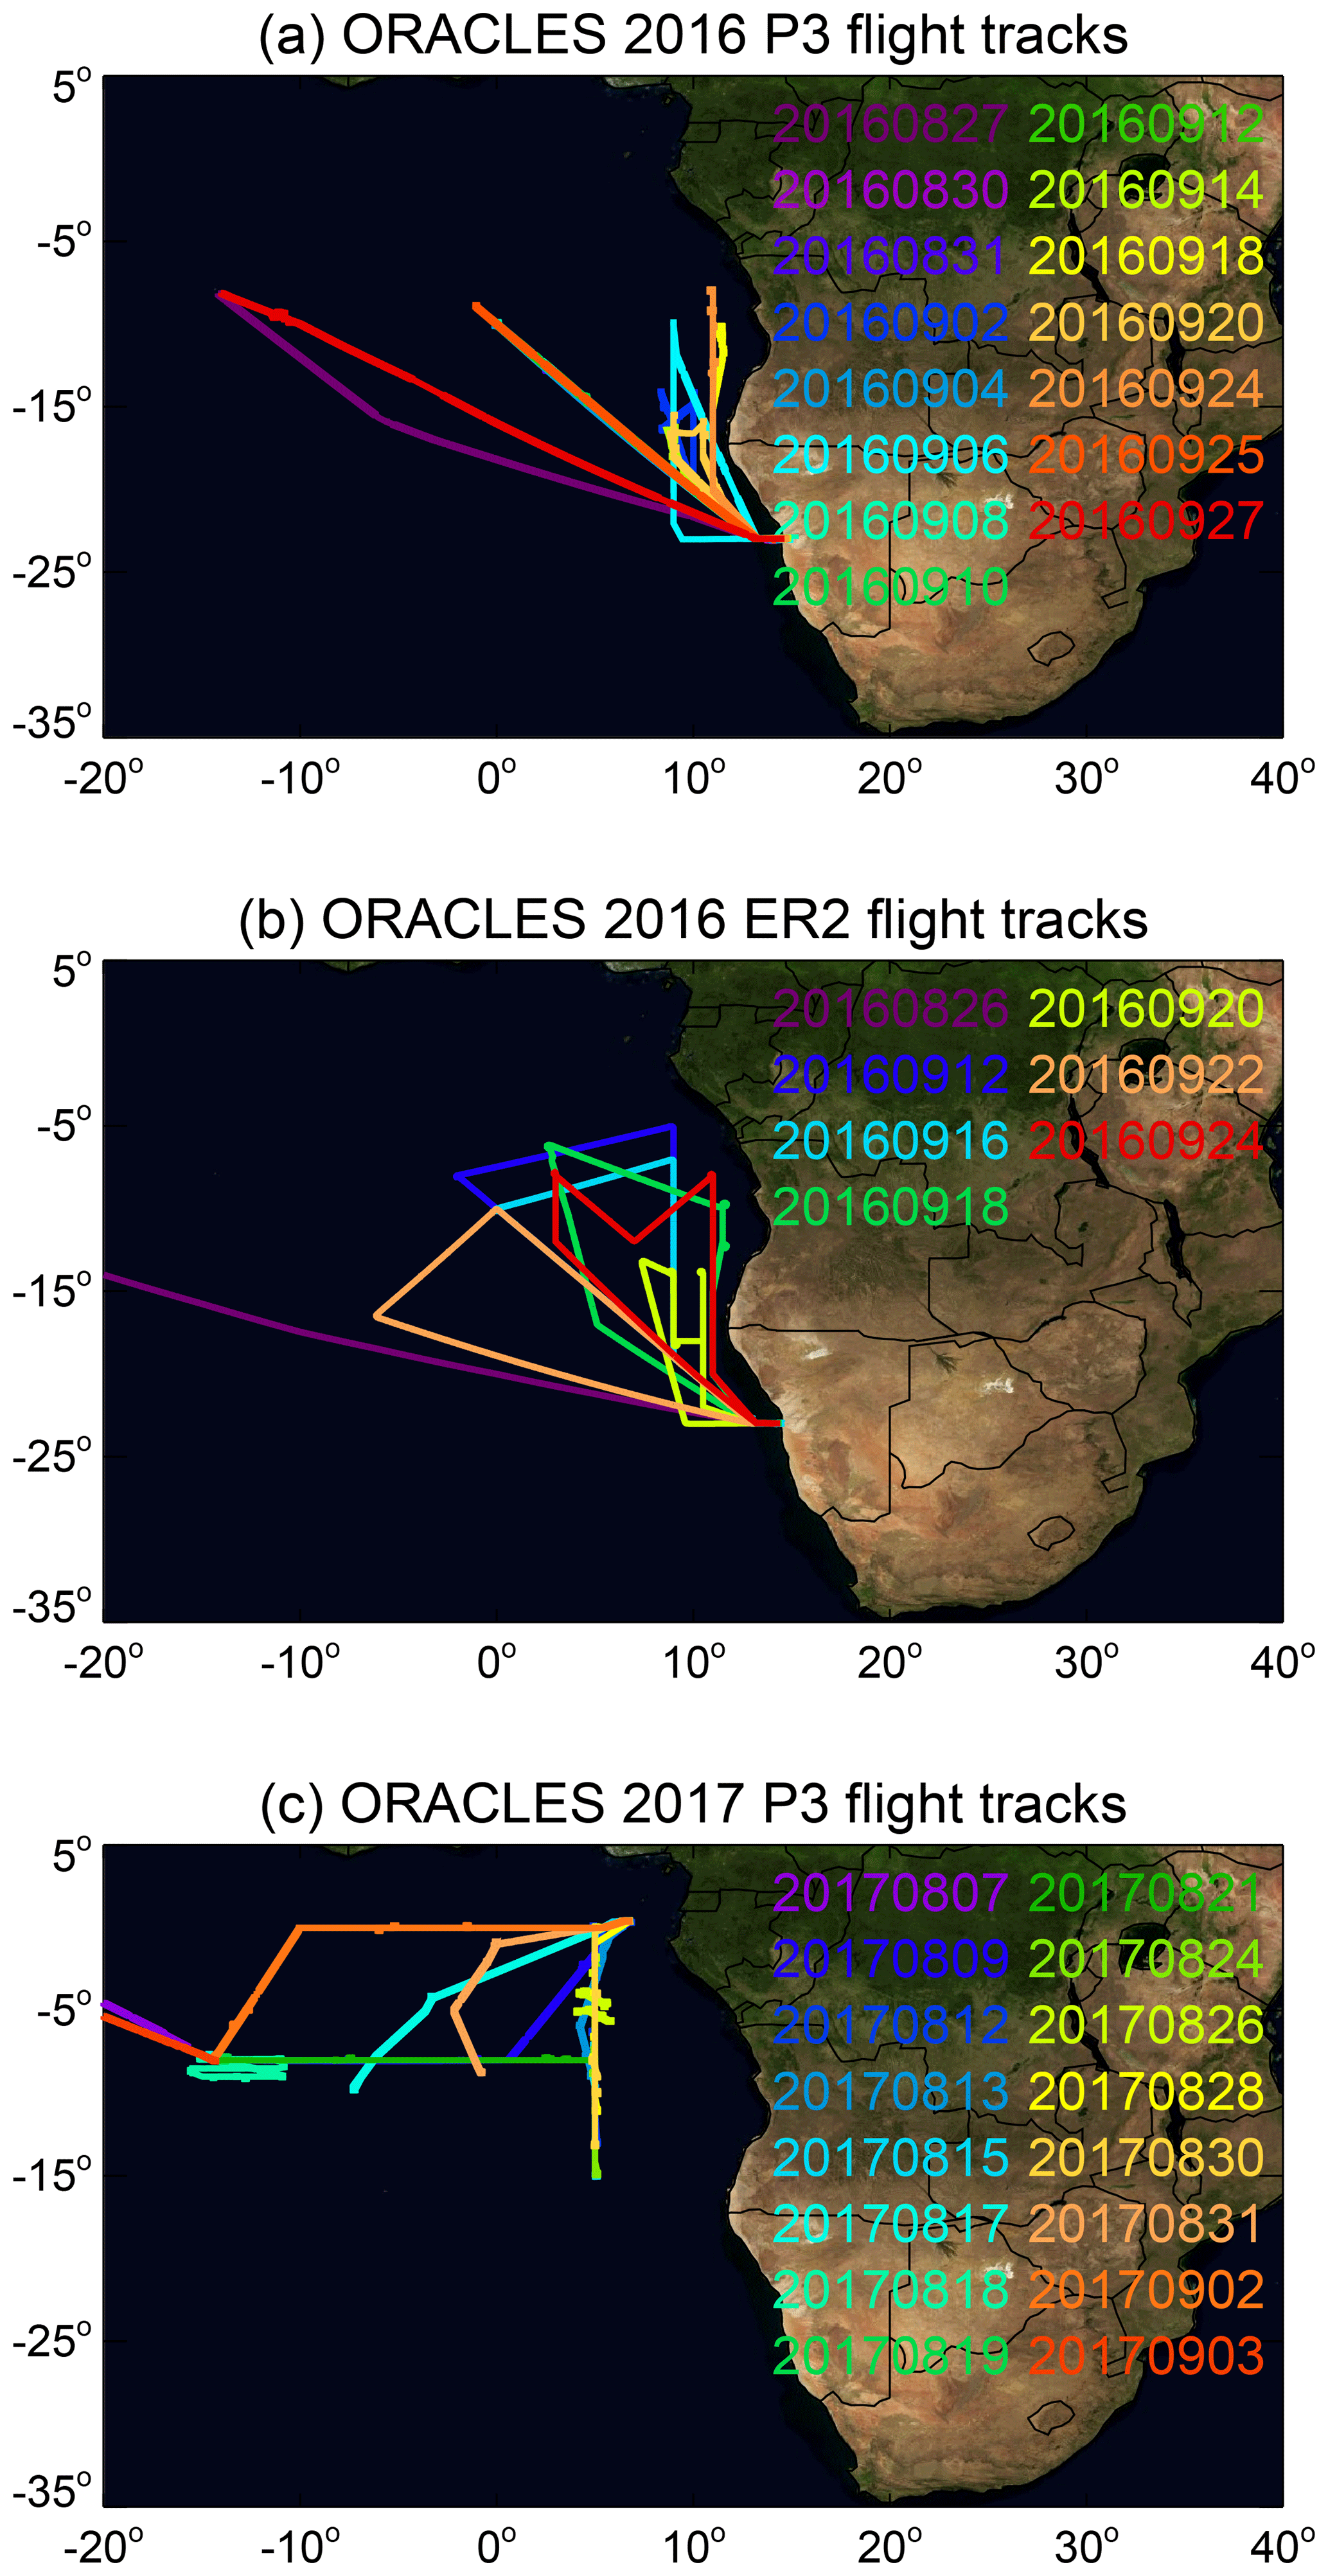 AMT - Two decades observing smoke above clouds in the south